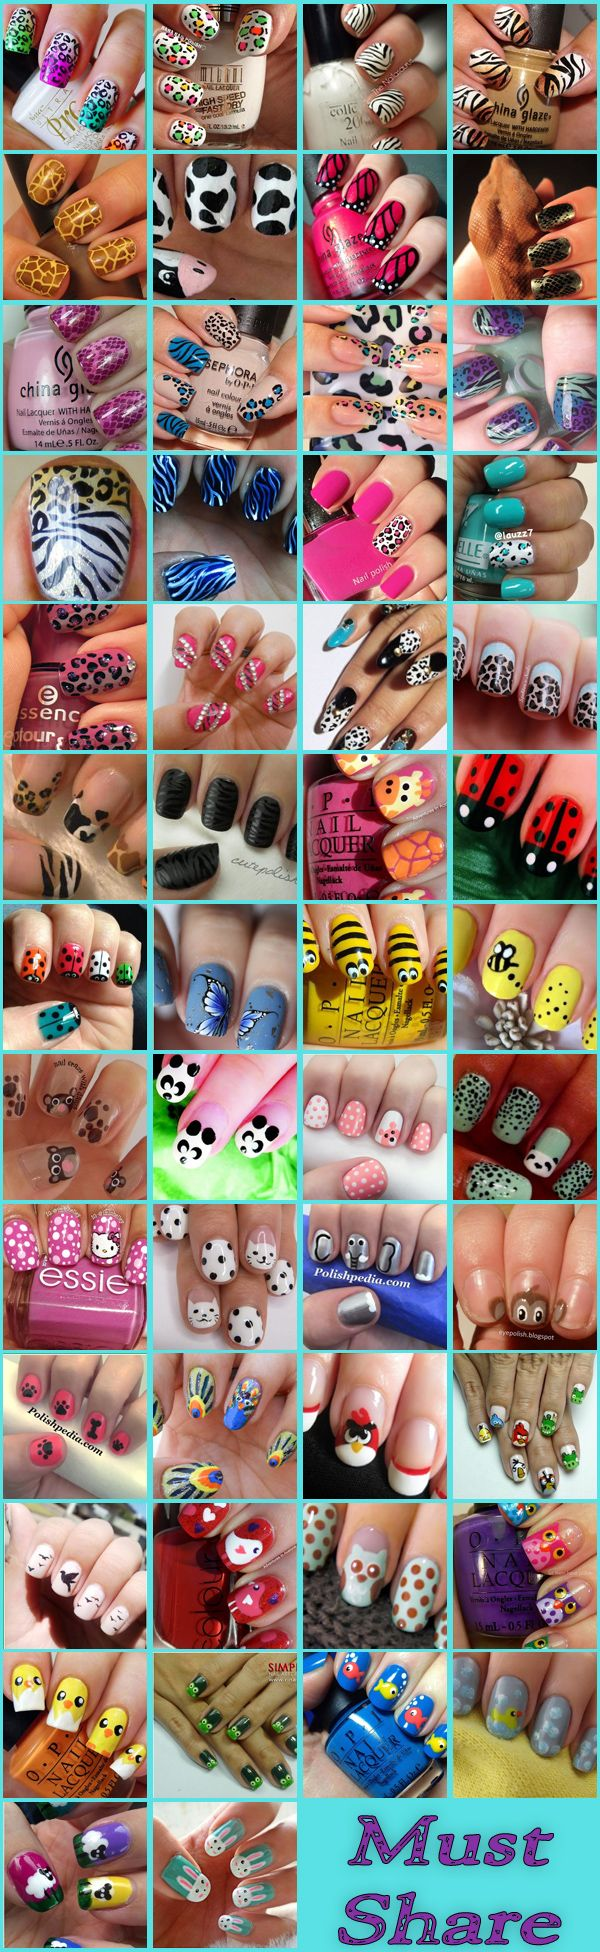 Animal Themed Nail Arts Collection : Here we are sharing 50 such amazing nail arts which are inspired by animals. There are so many!